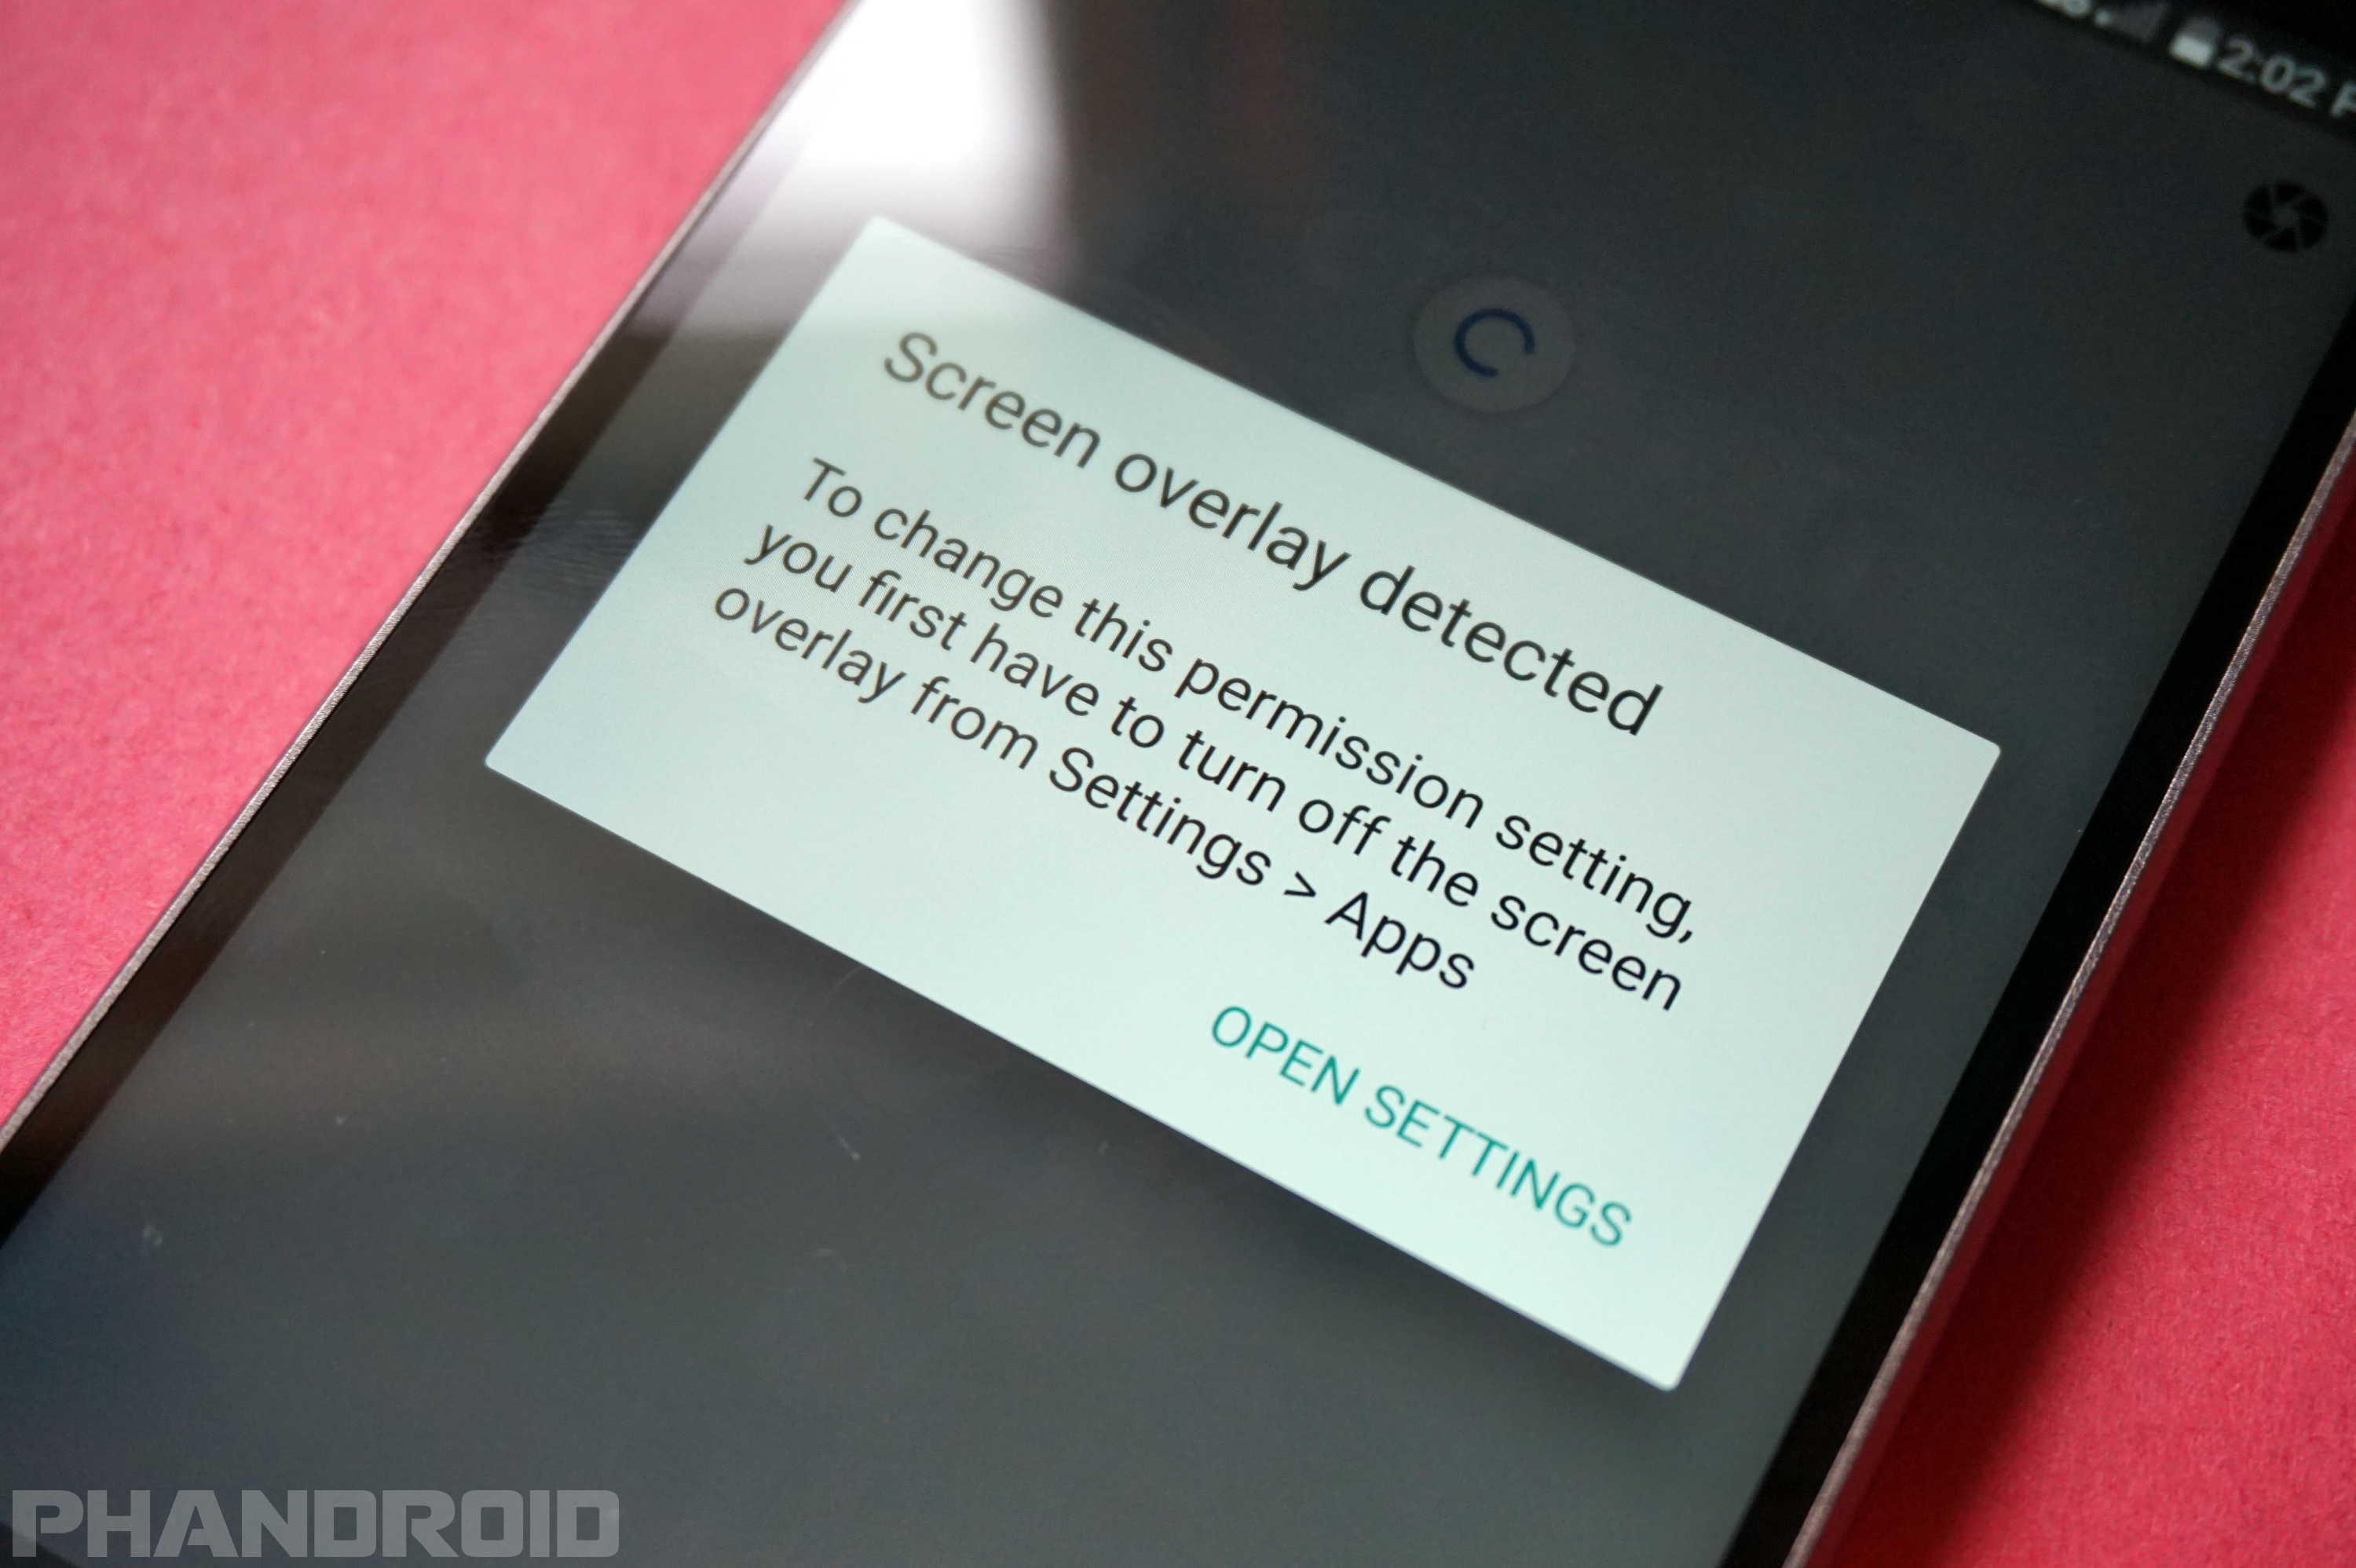 How to turn off screen overlay on Android